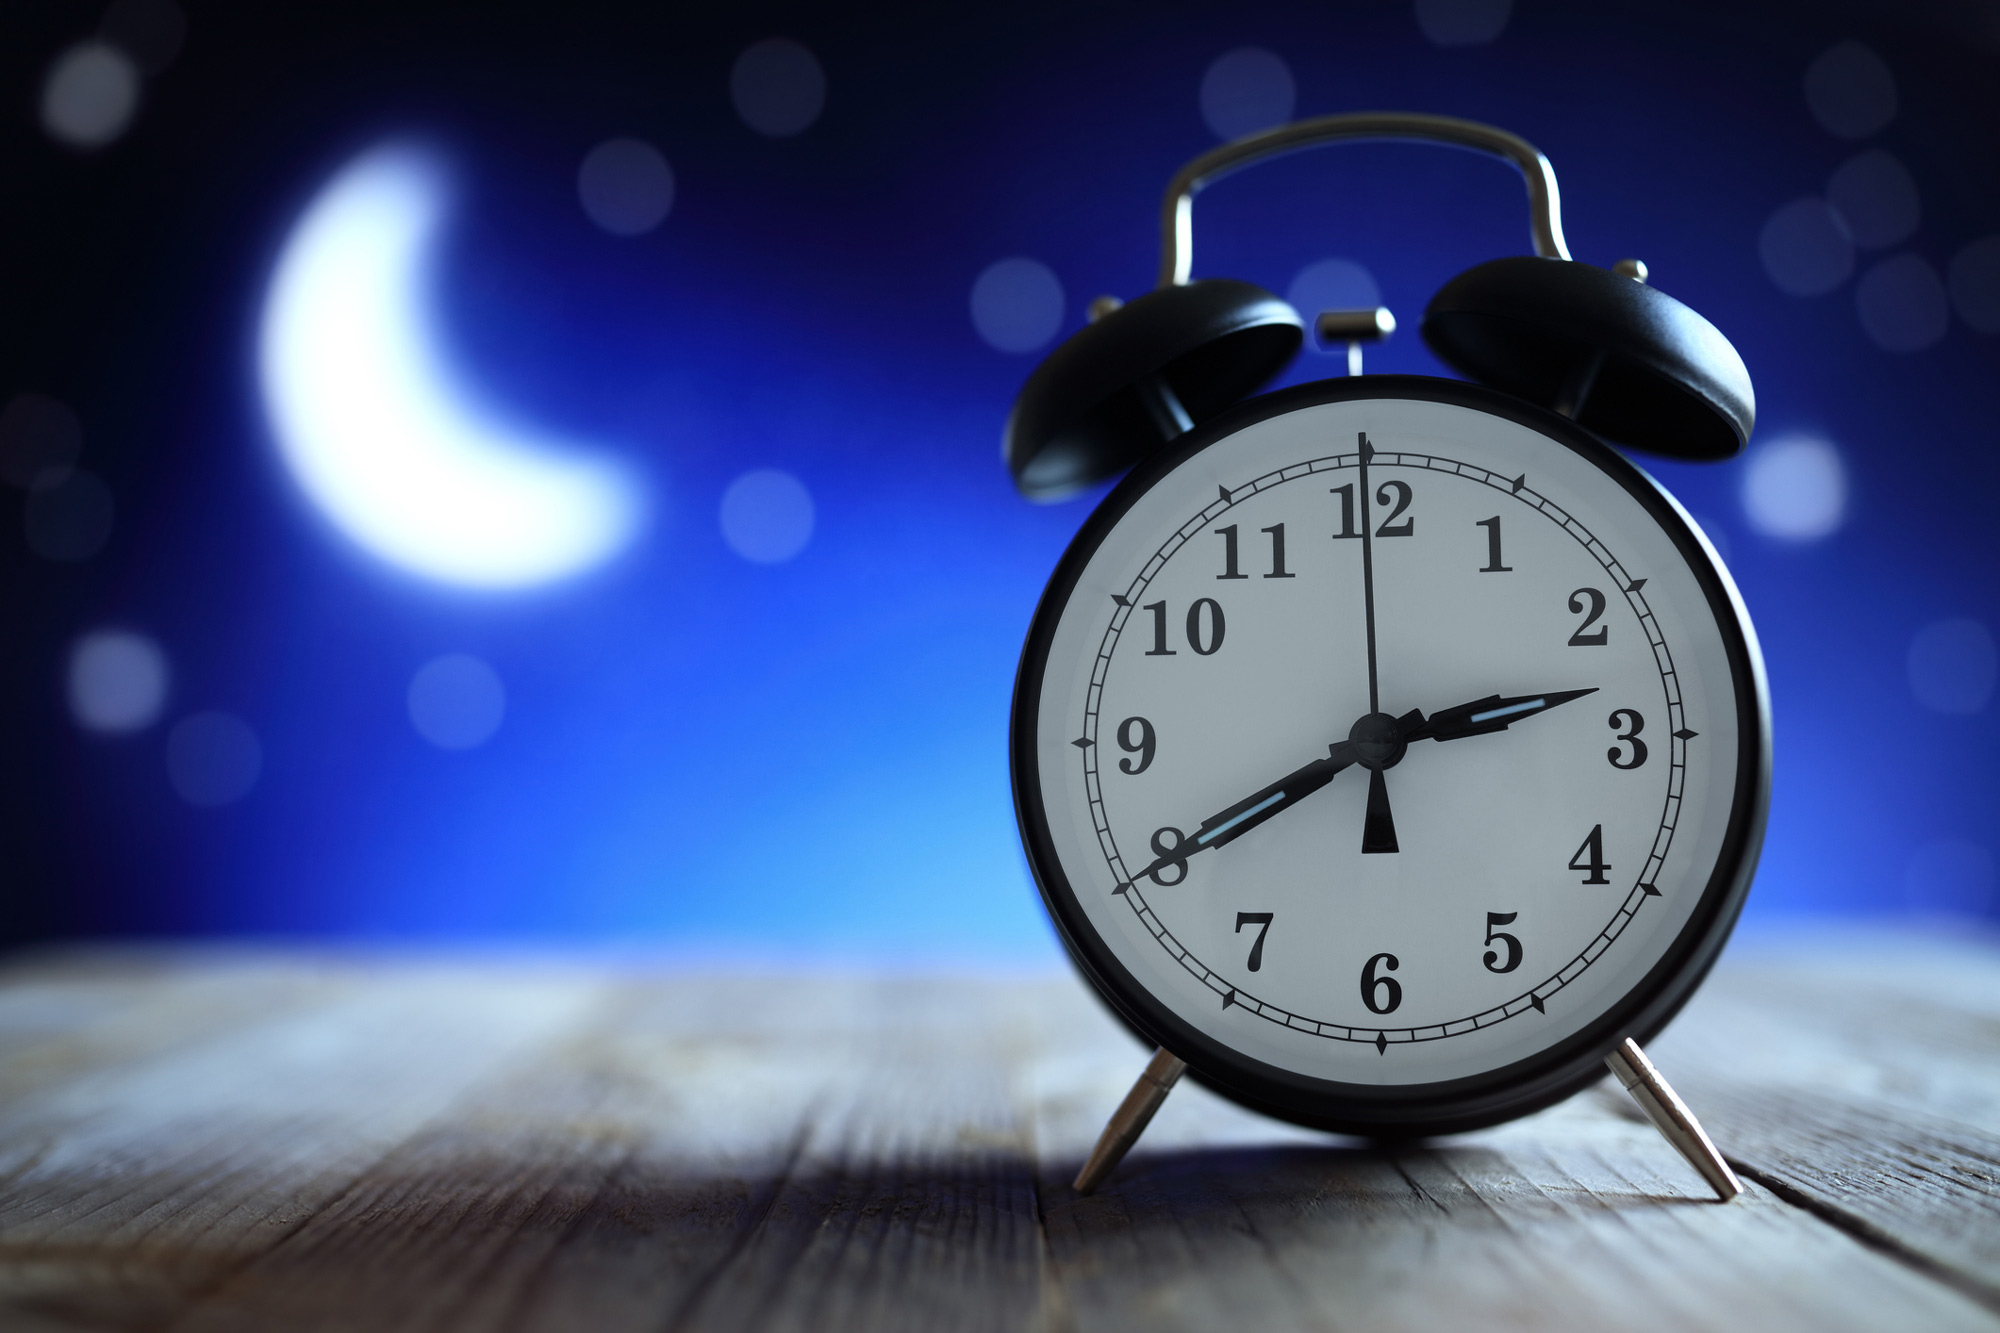 alarm clock and moon website selling CME continuing medical education online courses with LMS eLearning platform